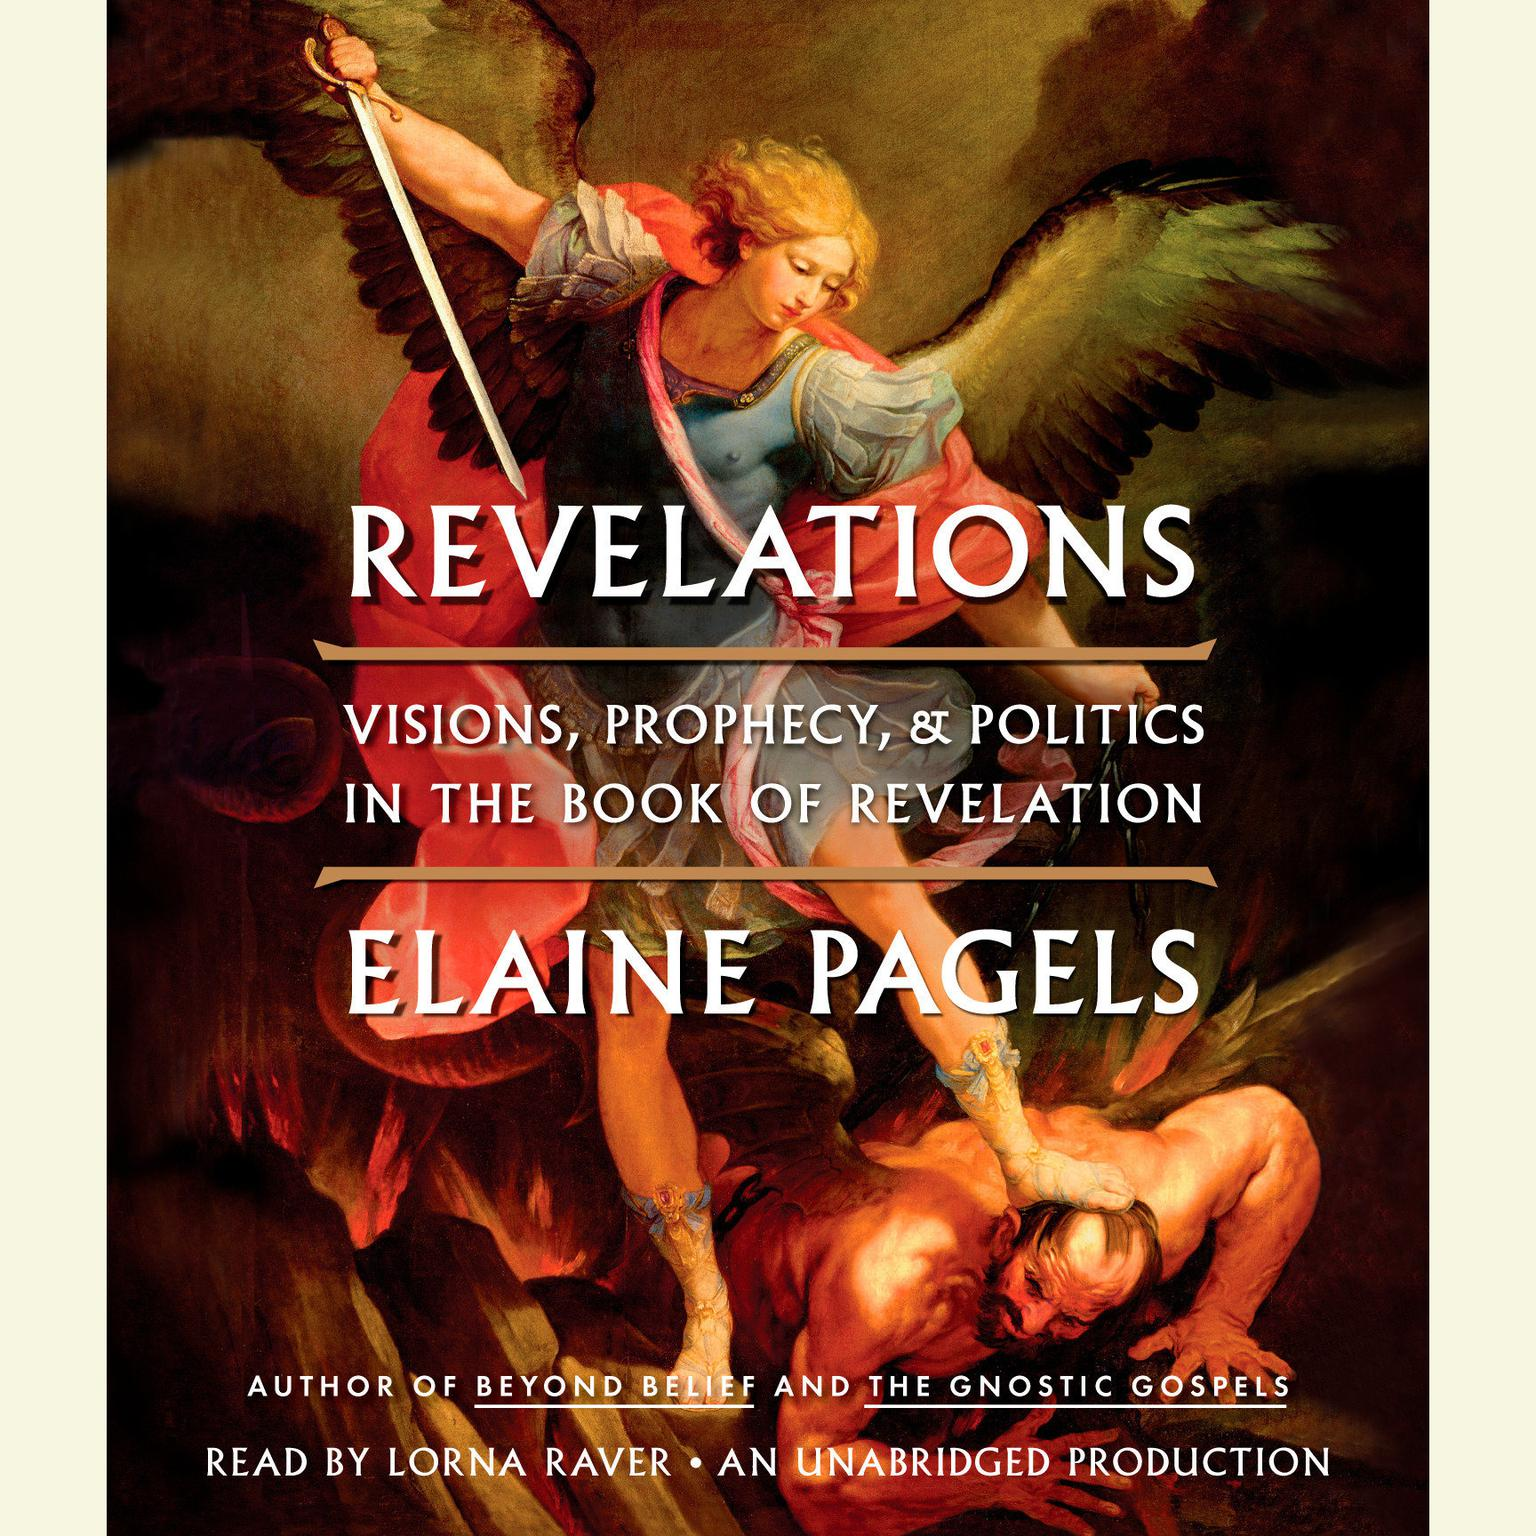 Printable Revelations: Visions, Prophecy, and Politics in the Book of Revelation Audiobook Cover Art